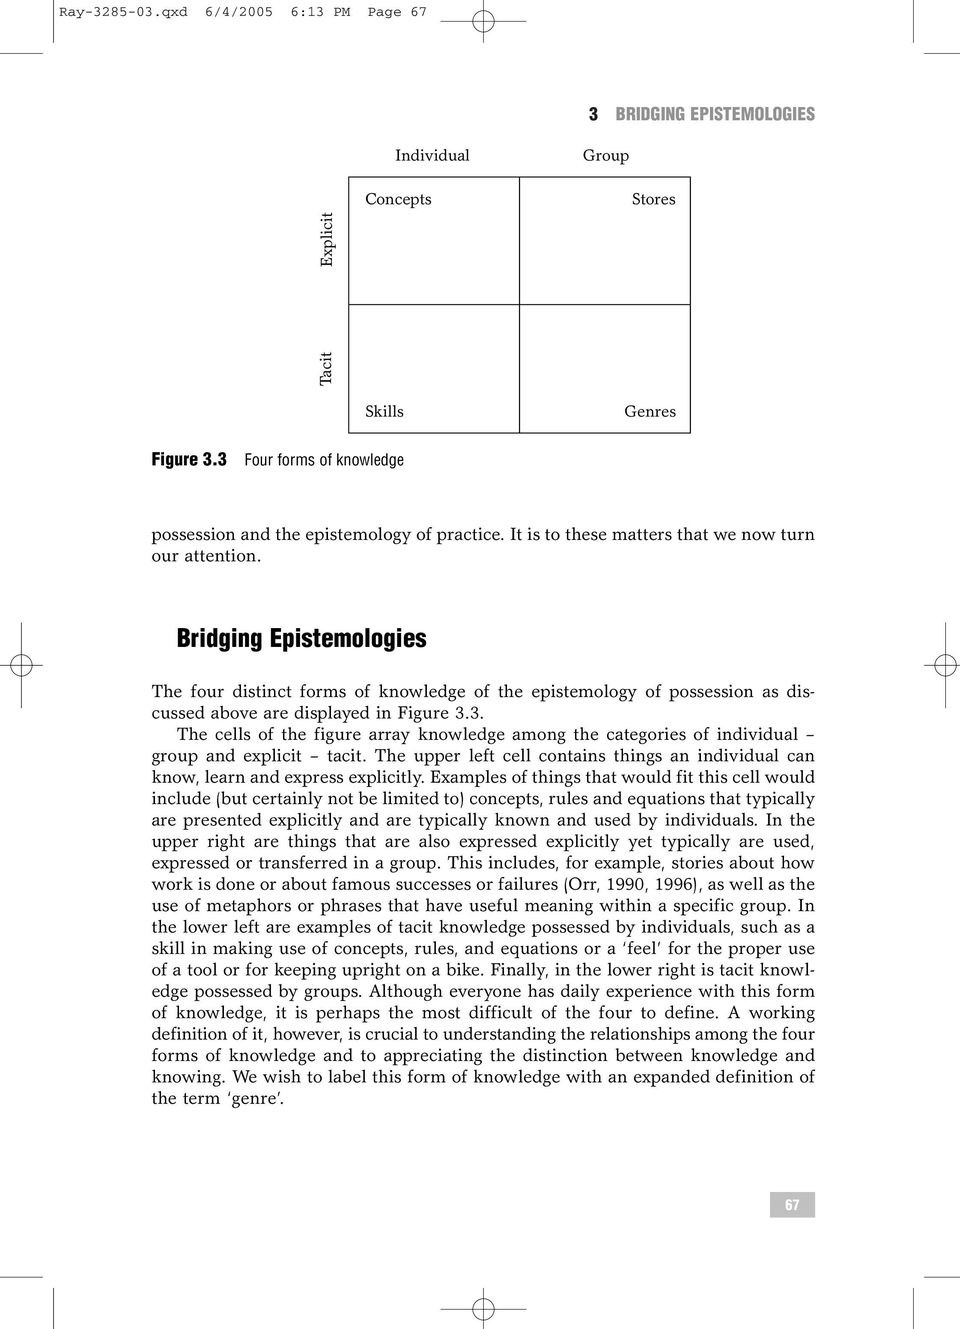 Bridging Epistemologies The four distinct forms of knowledge of the epistemology of possession as discussed above are displayed in Figure 3.